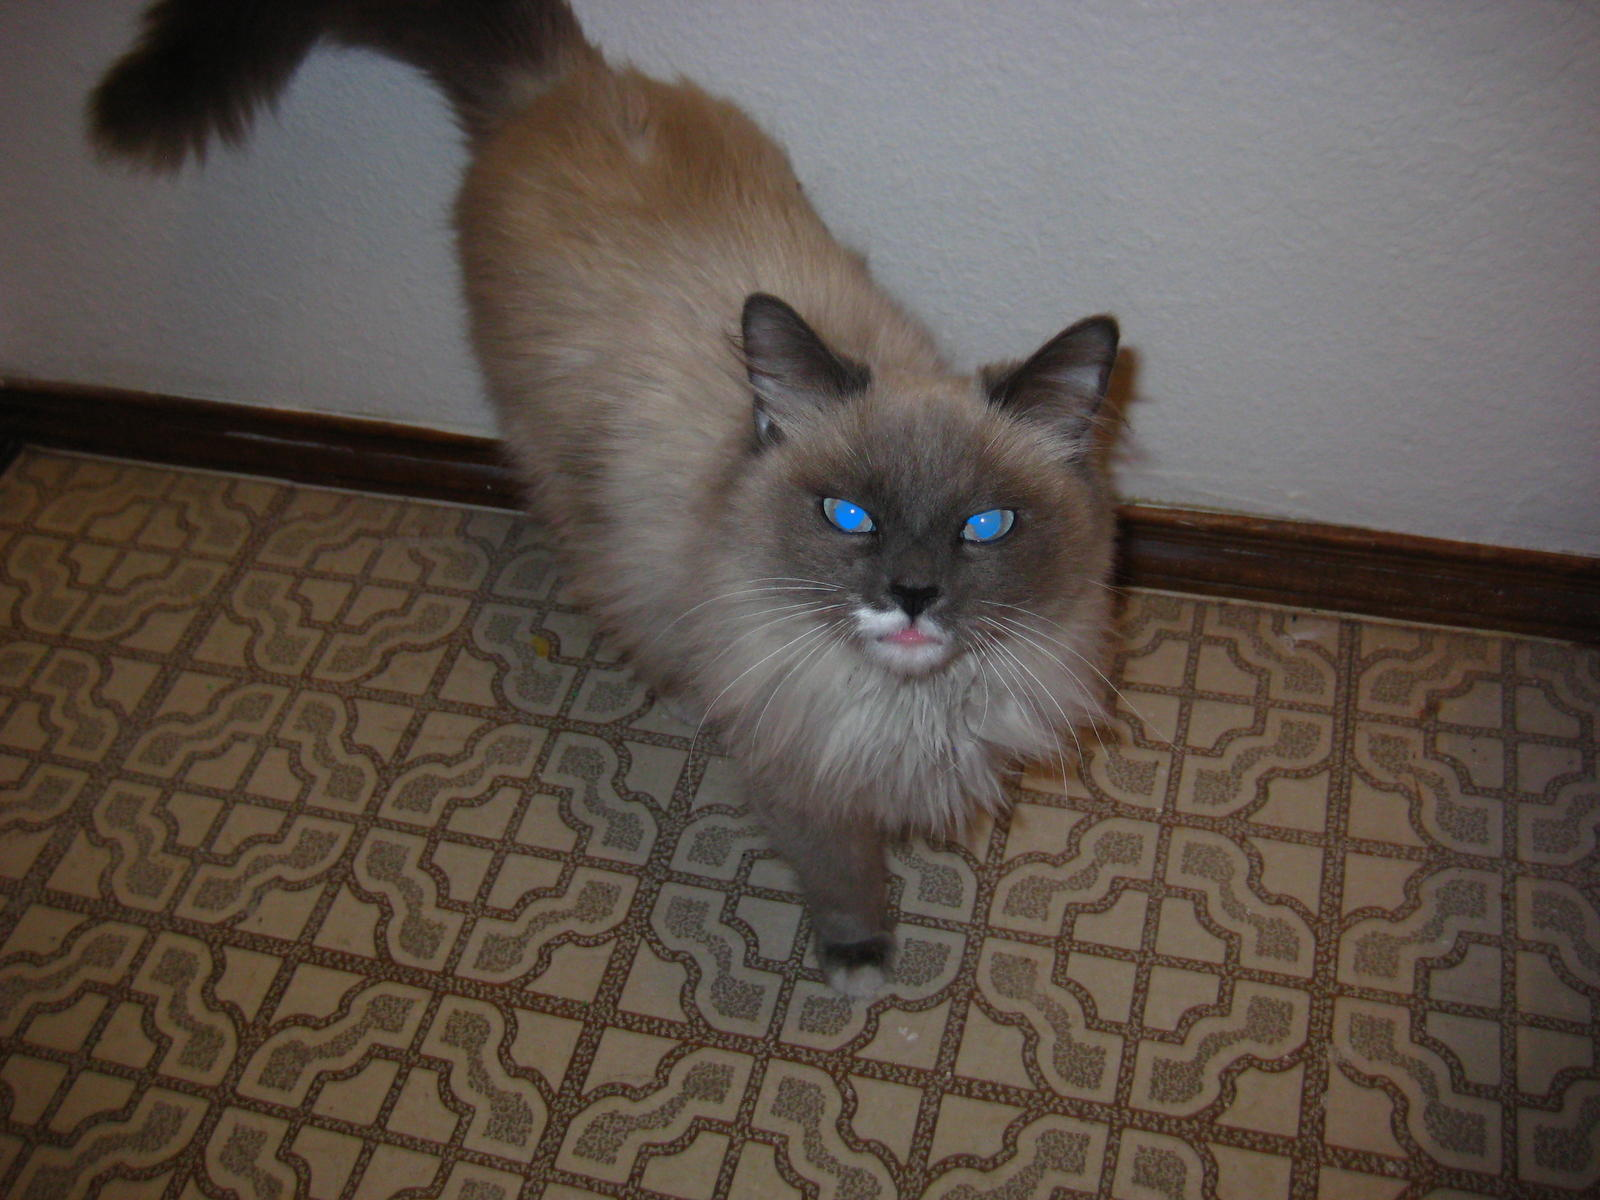 Who Misses A White Cat With Blue Eyes El Paso House Live In Texas Tx City Data Forum